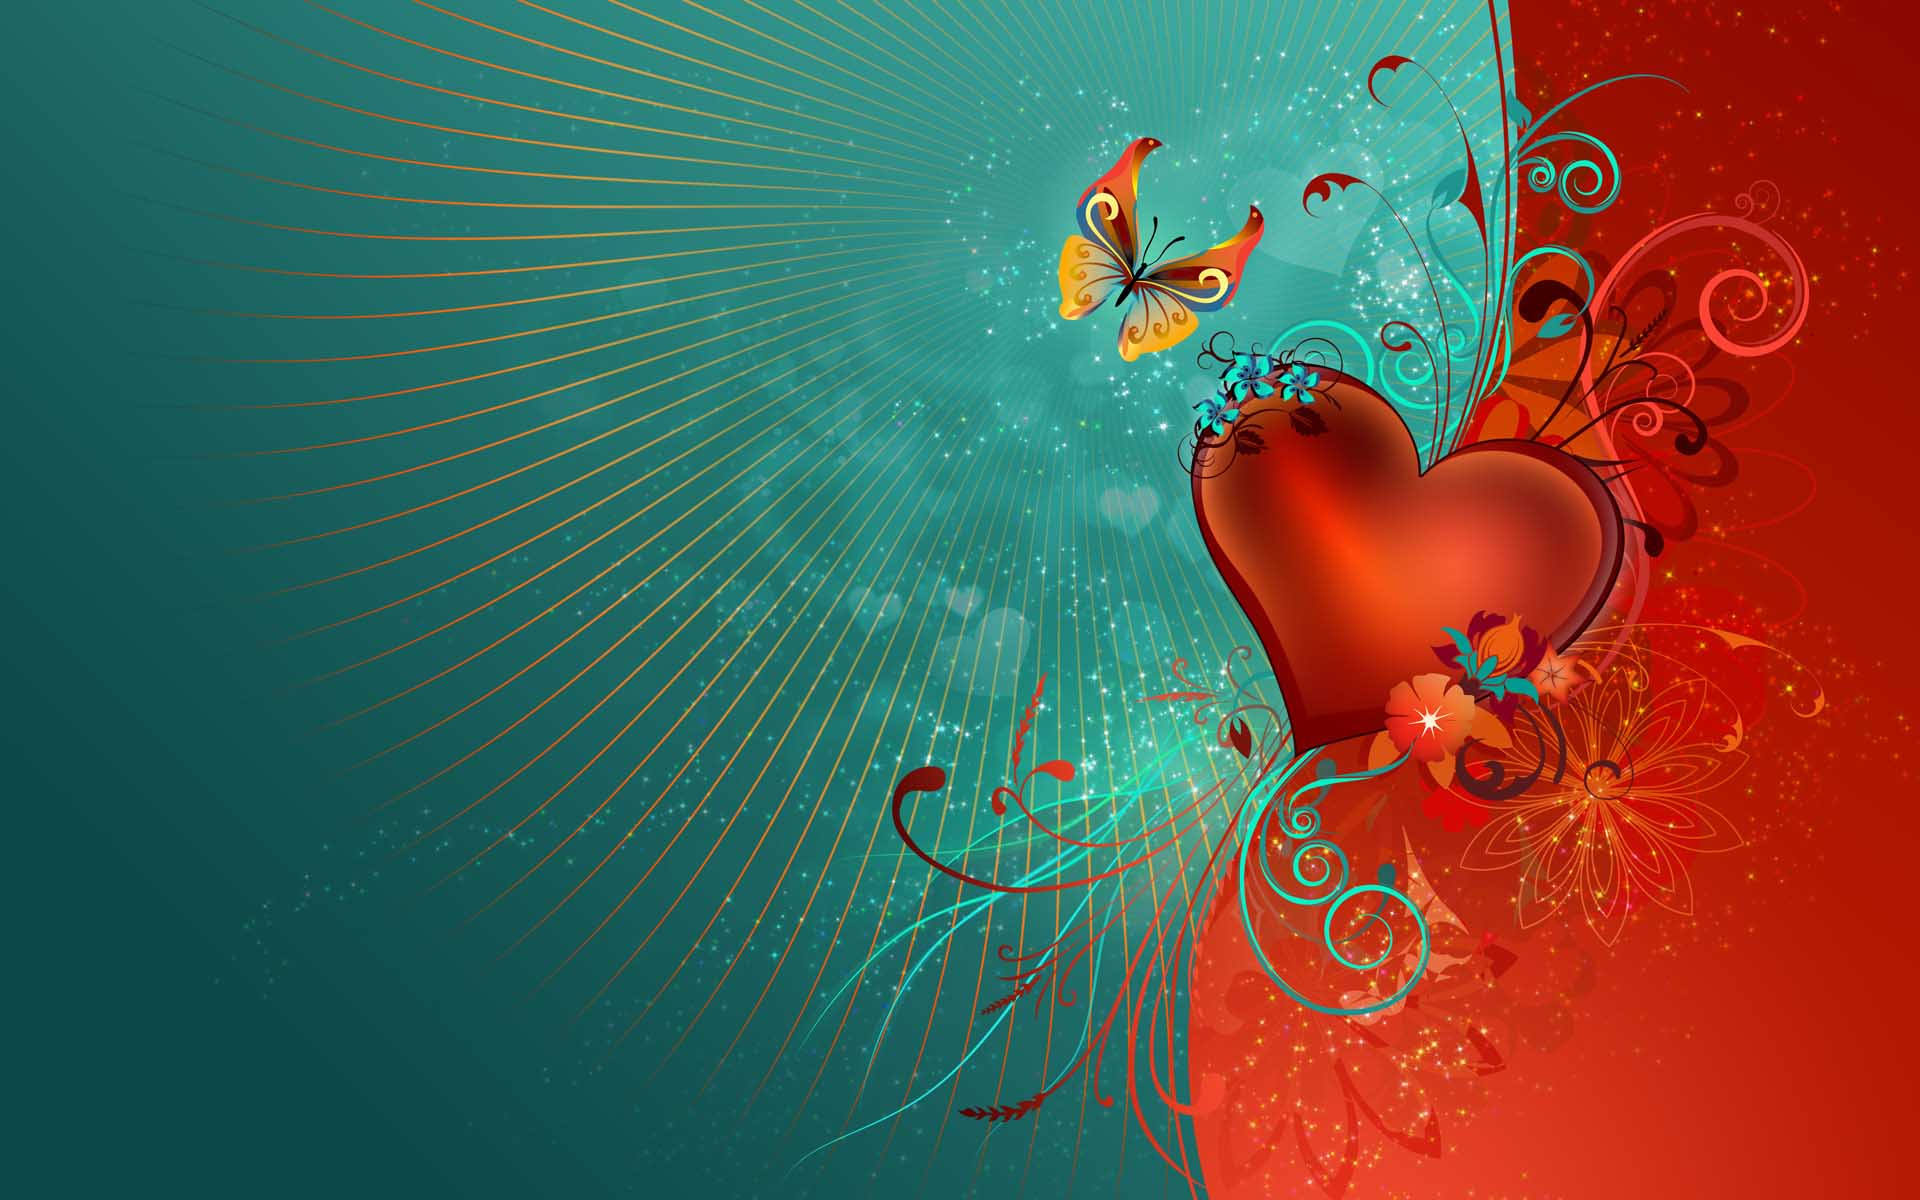 Hd Love Background Wallpapers Download Free 1920x1200